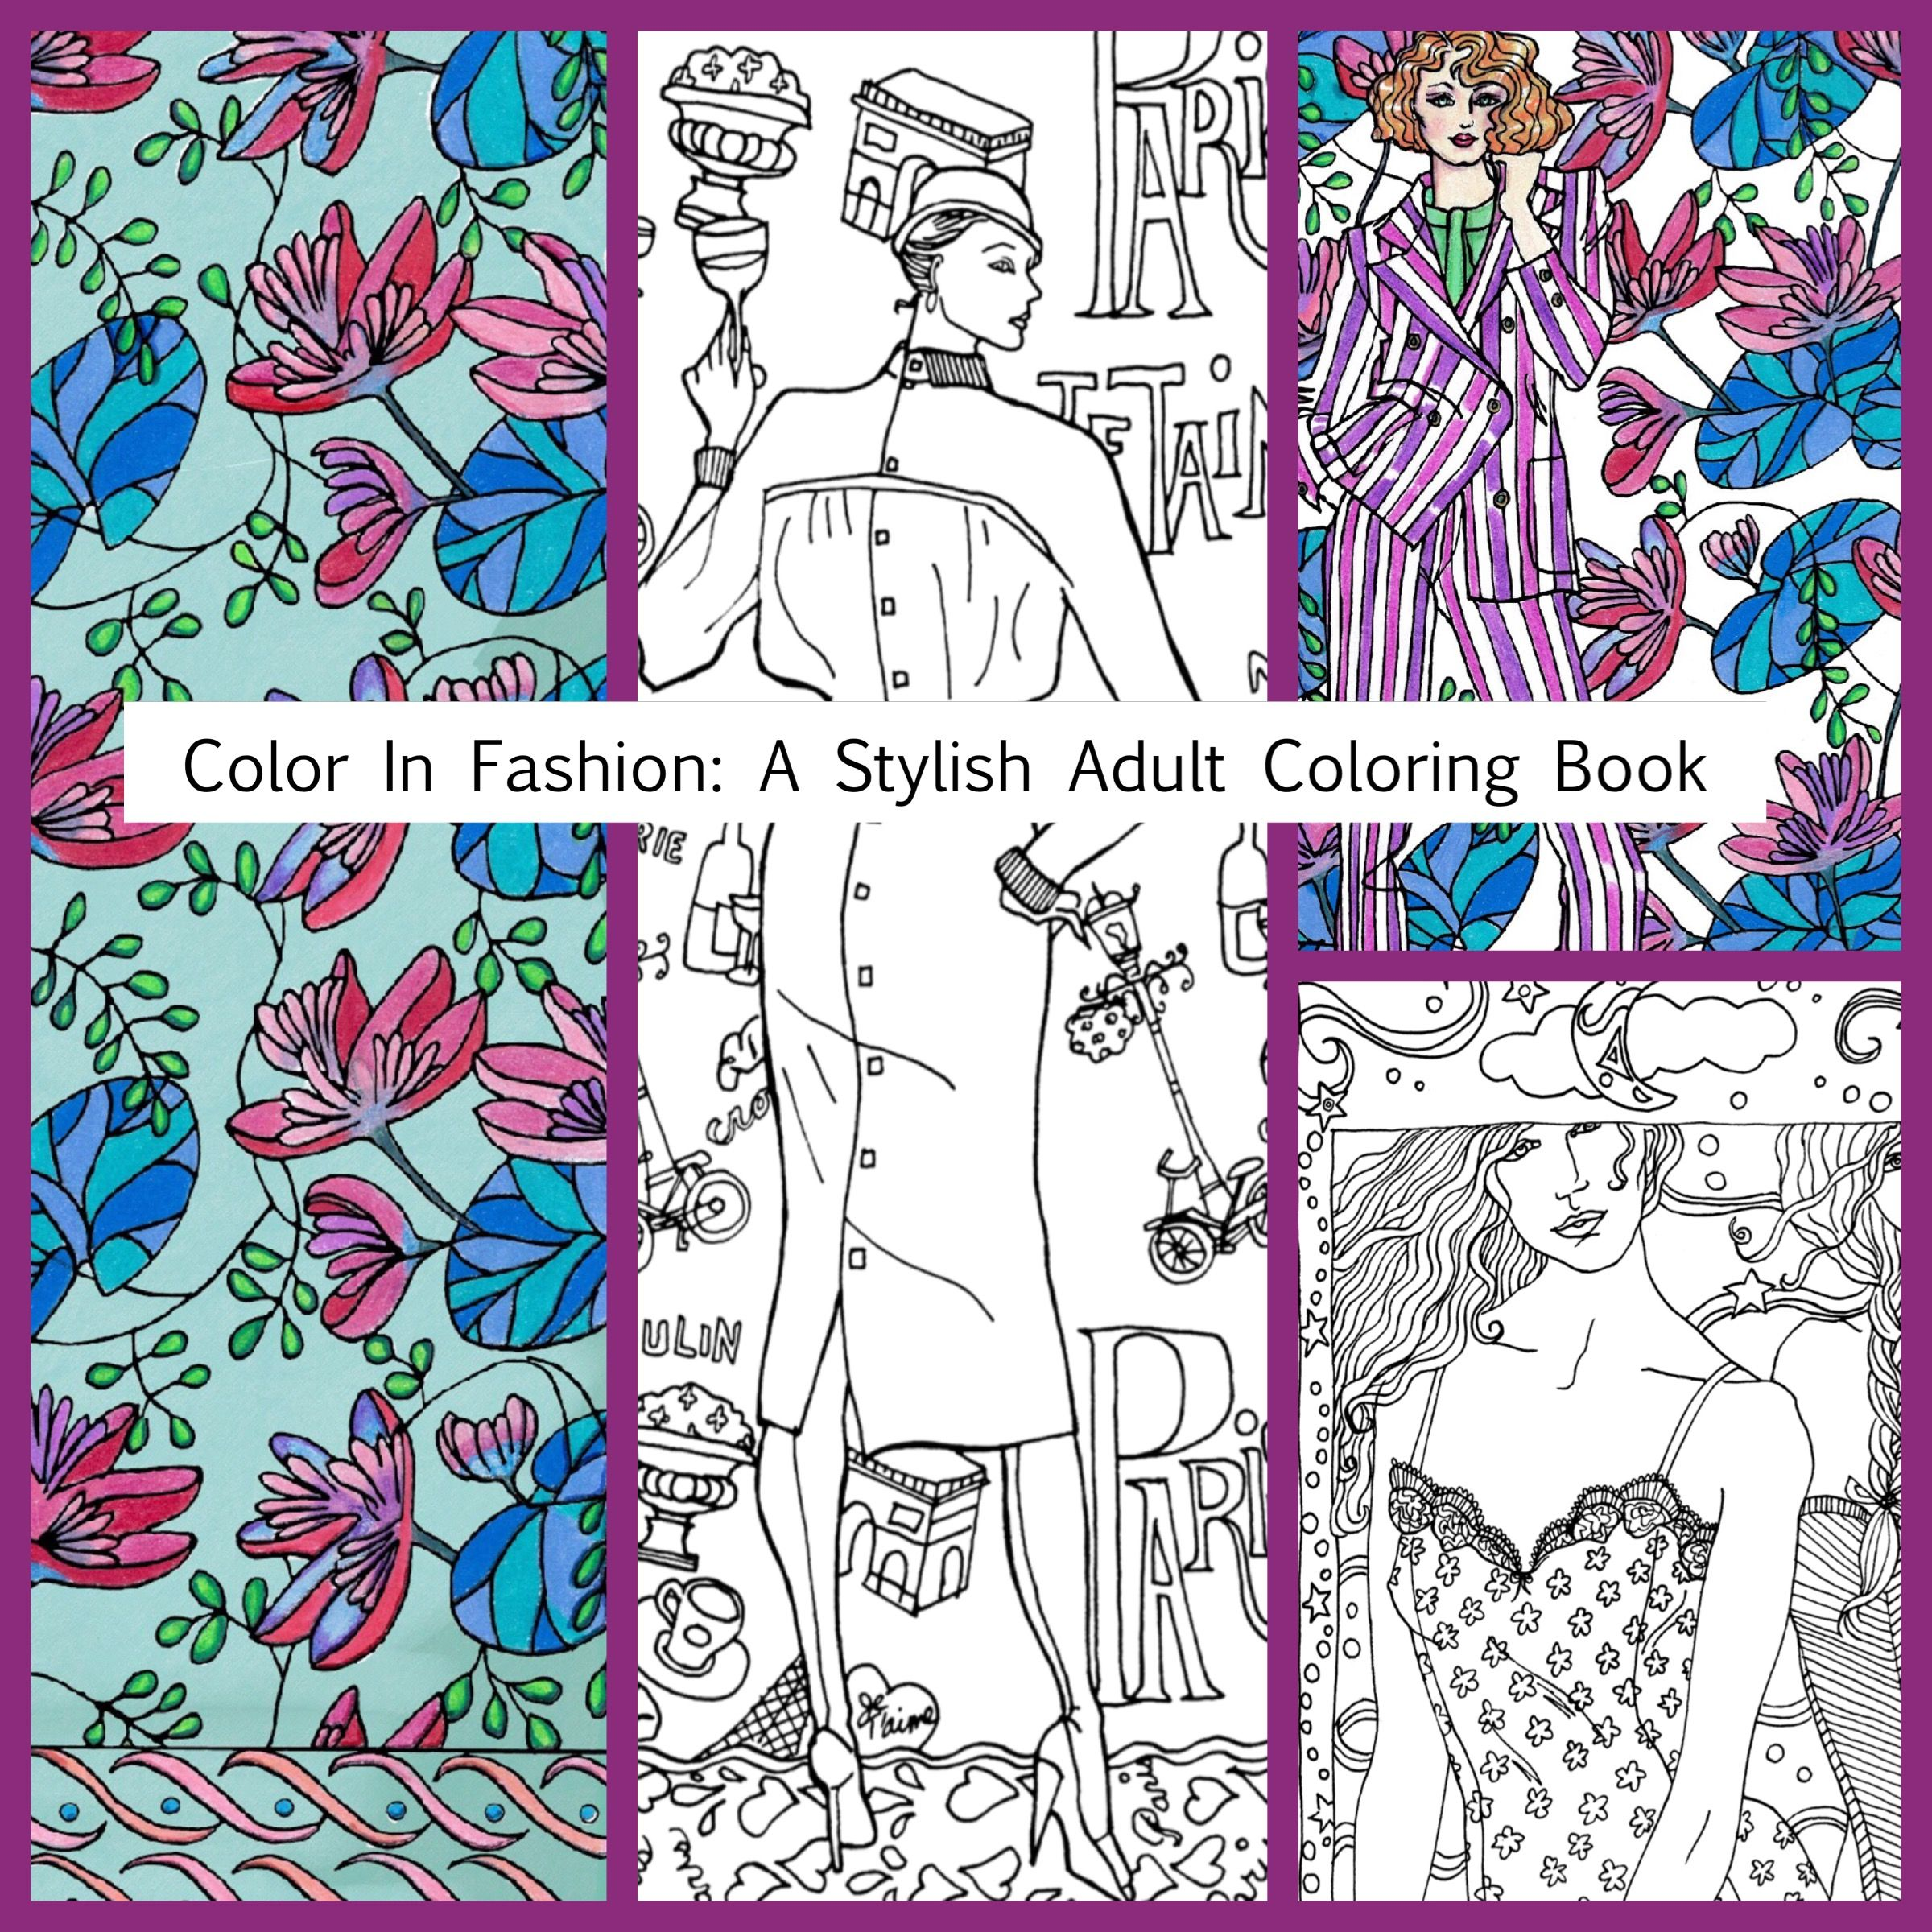 A collage from my new adult coloring book. Trying out Pickframe and liking it!